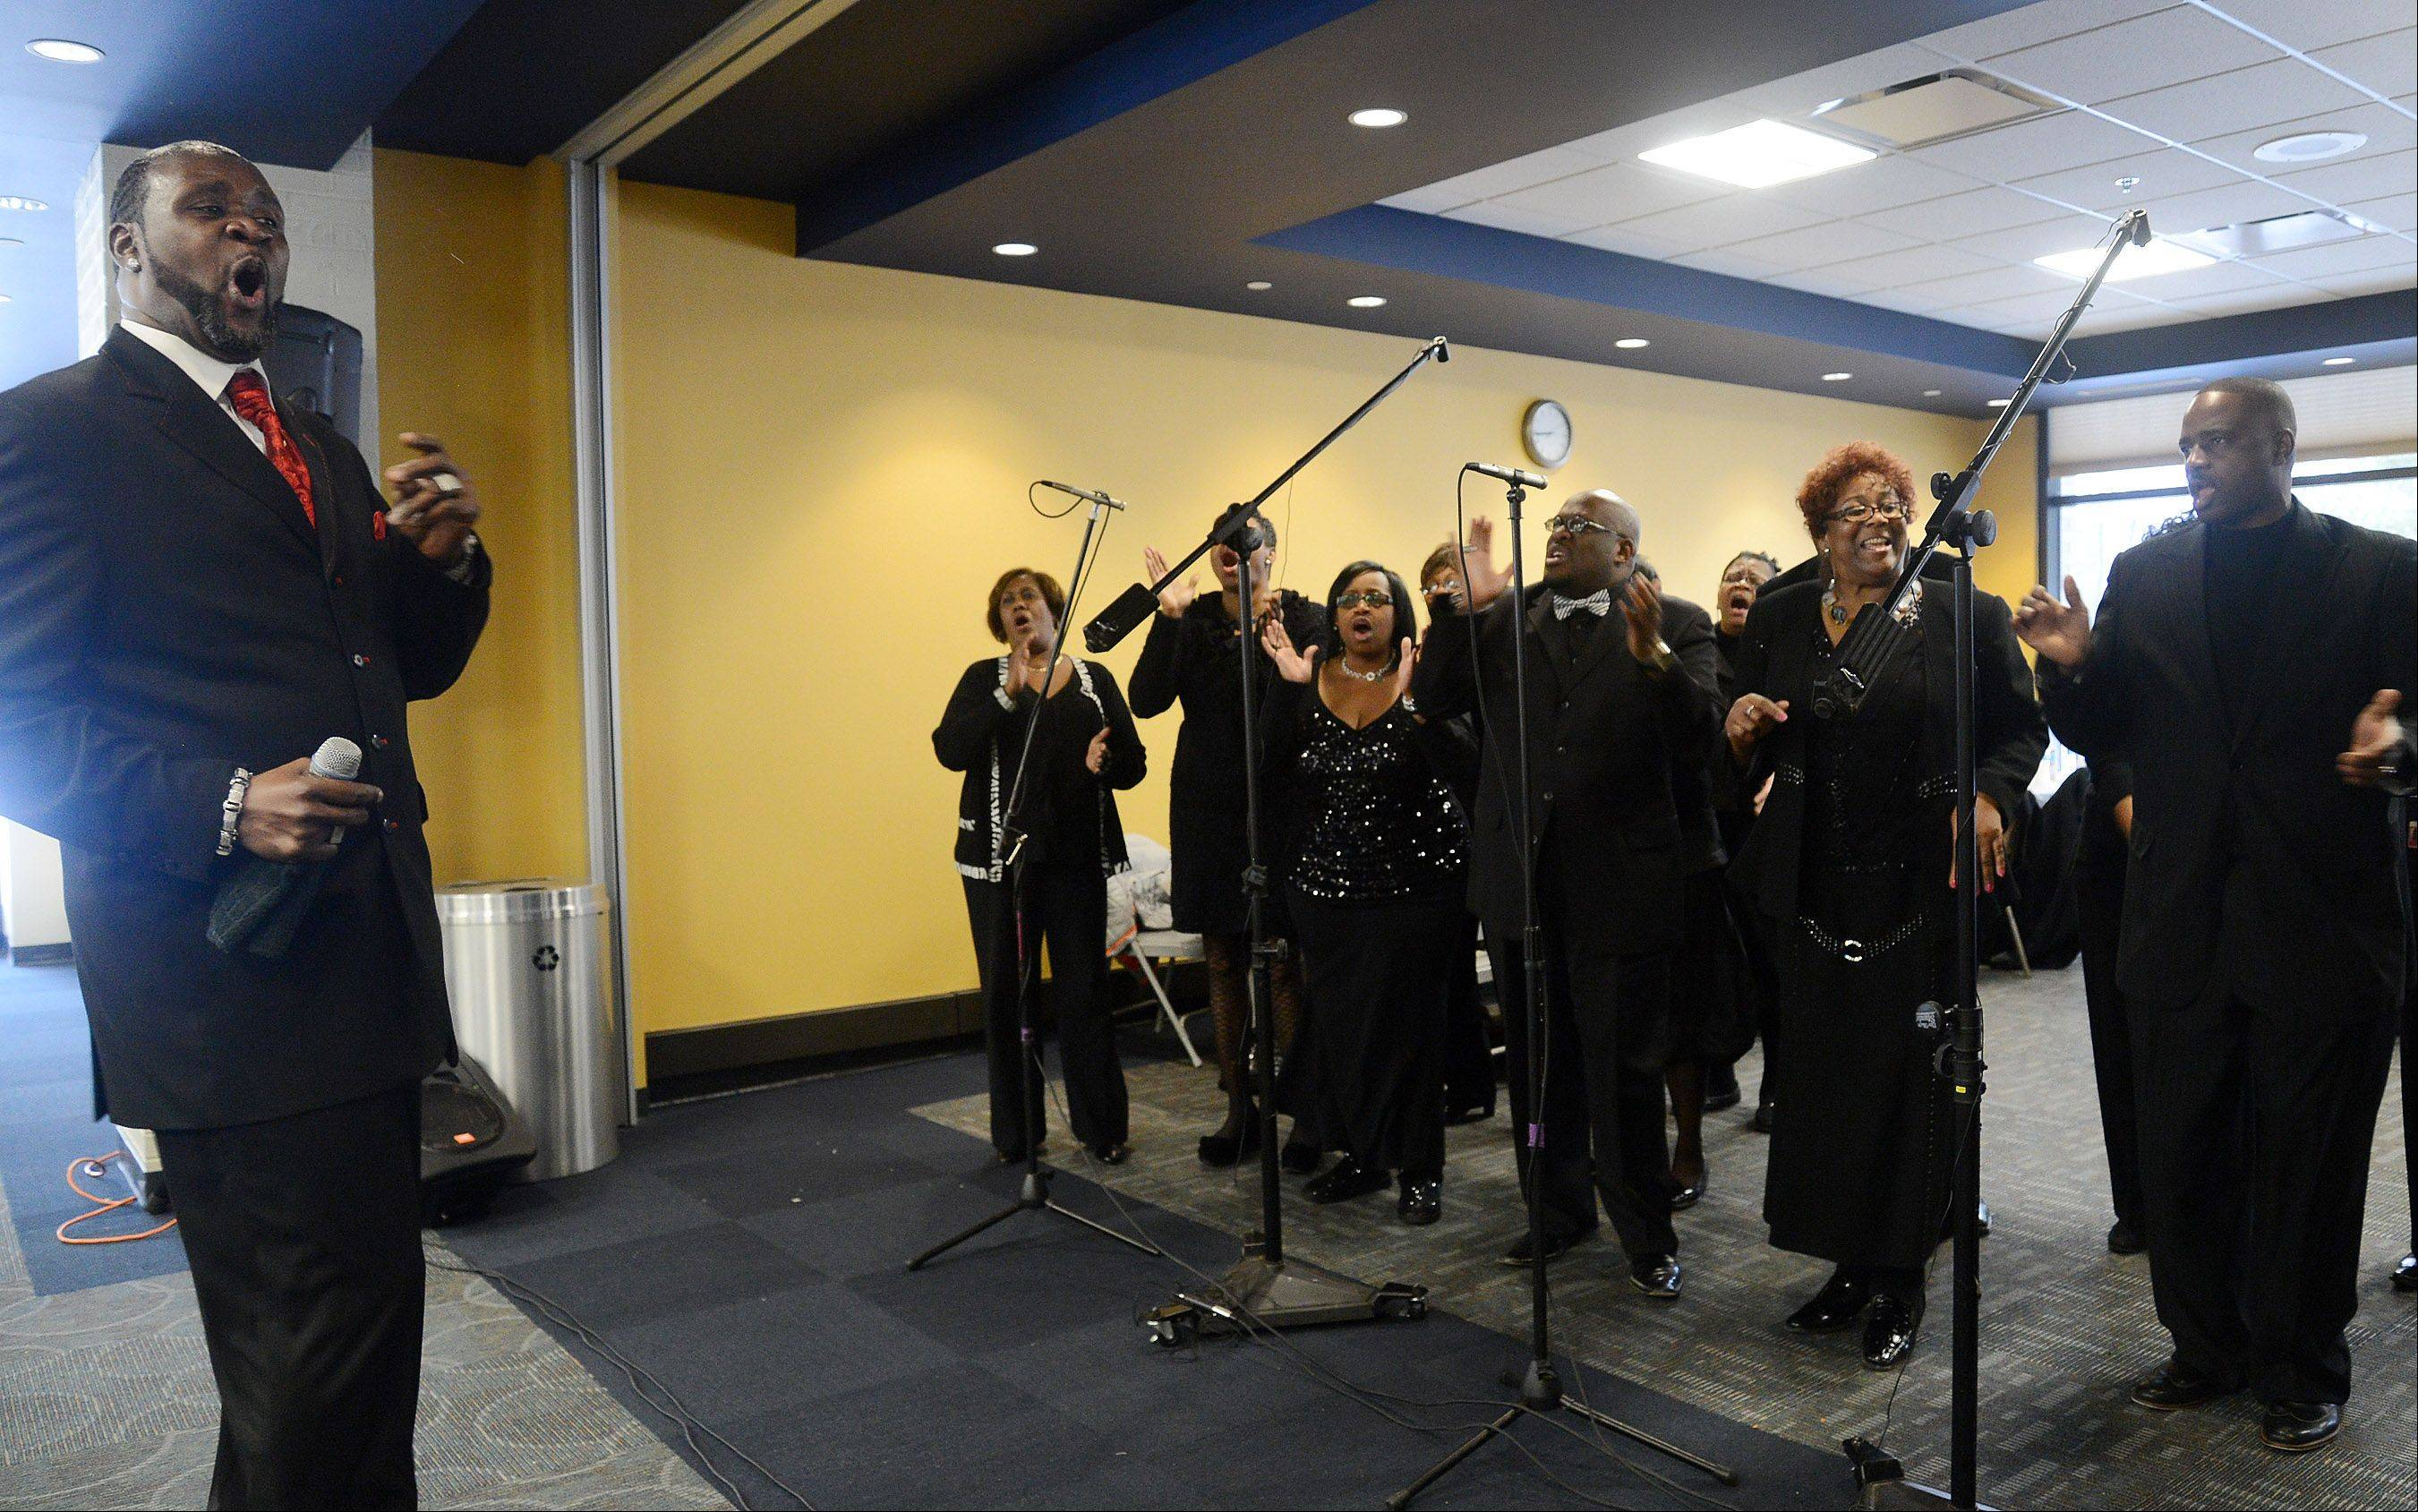 Musical director Jeff Lomax leads the Sears Holdings Associate Gospel Choir, during the Hoffman Estates Cultural Awareness Commission's 12th annual Martin Luther King Jr. Community Breakfast.